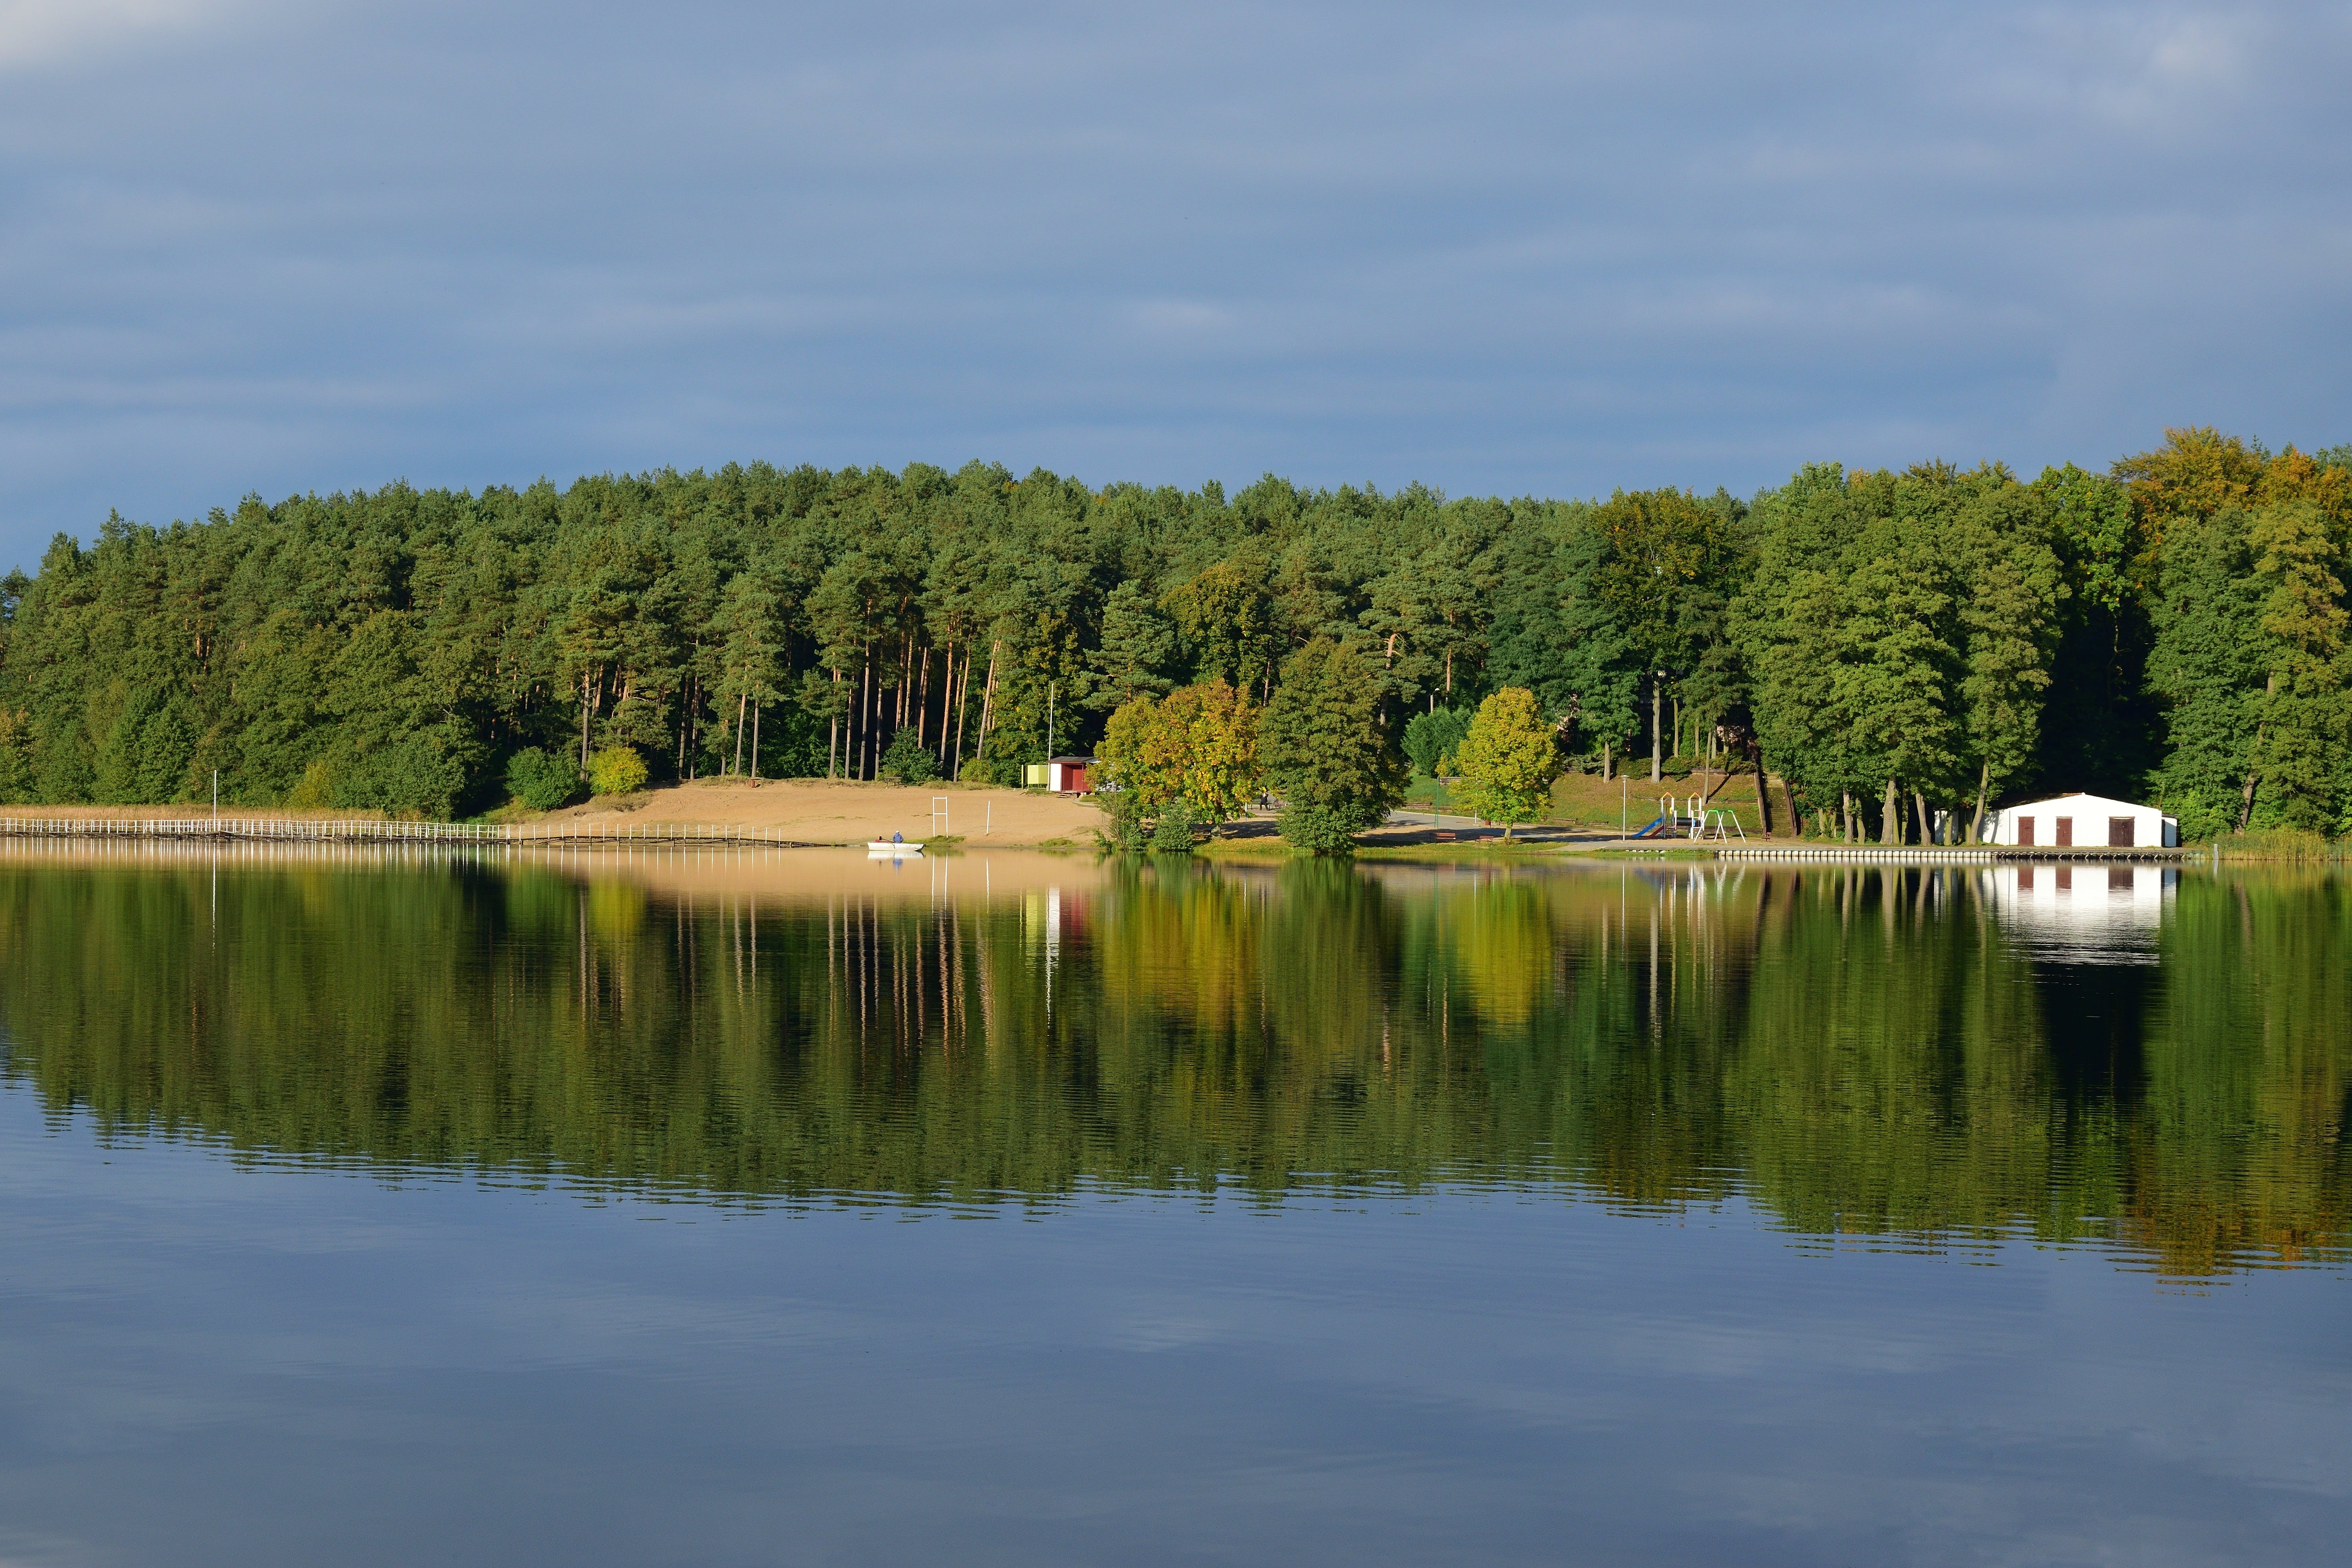 Landscape Photography of Trees and Body of Water